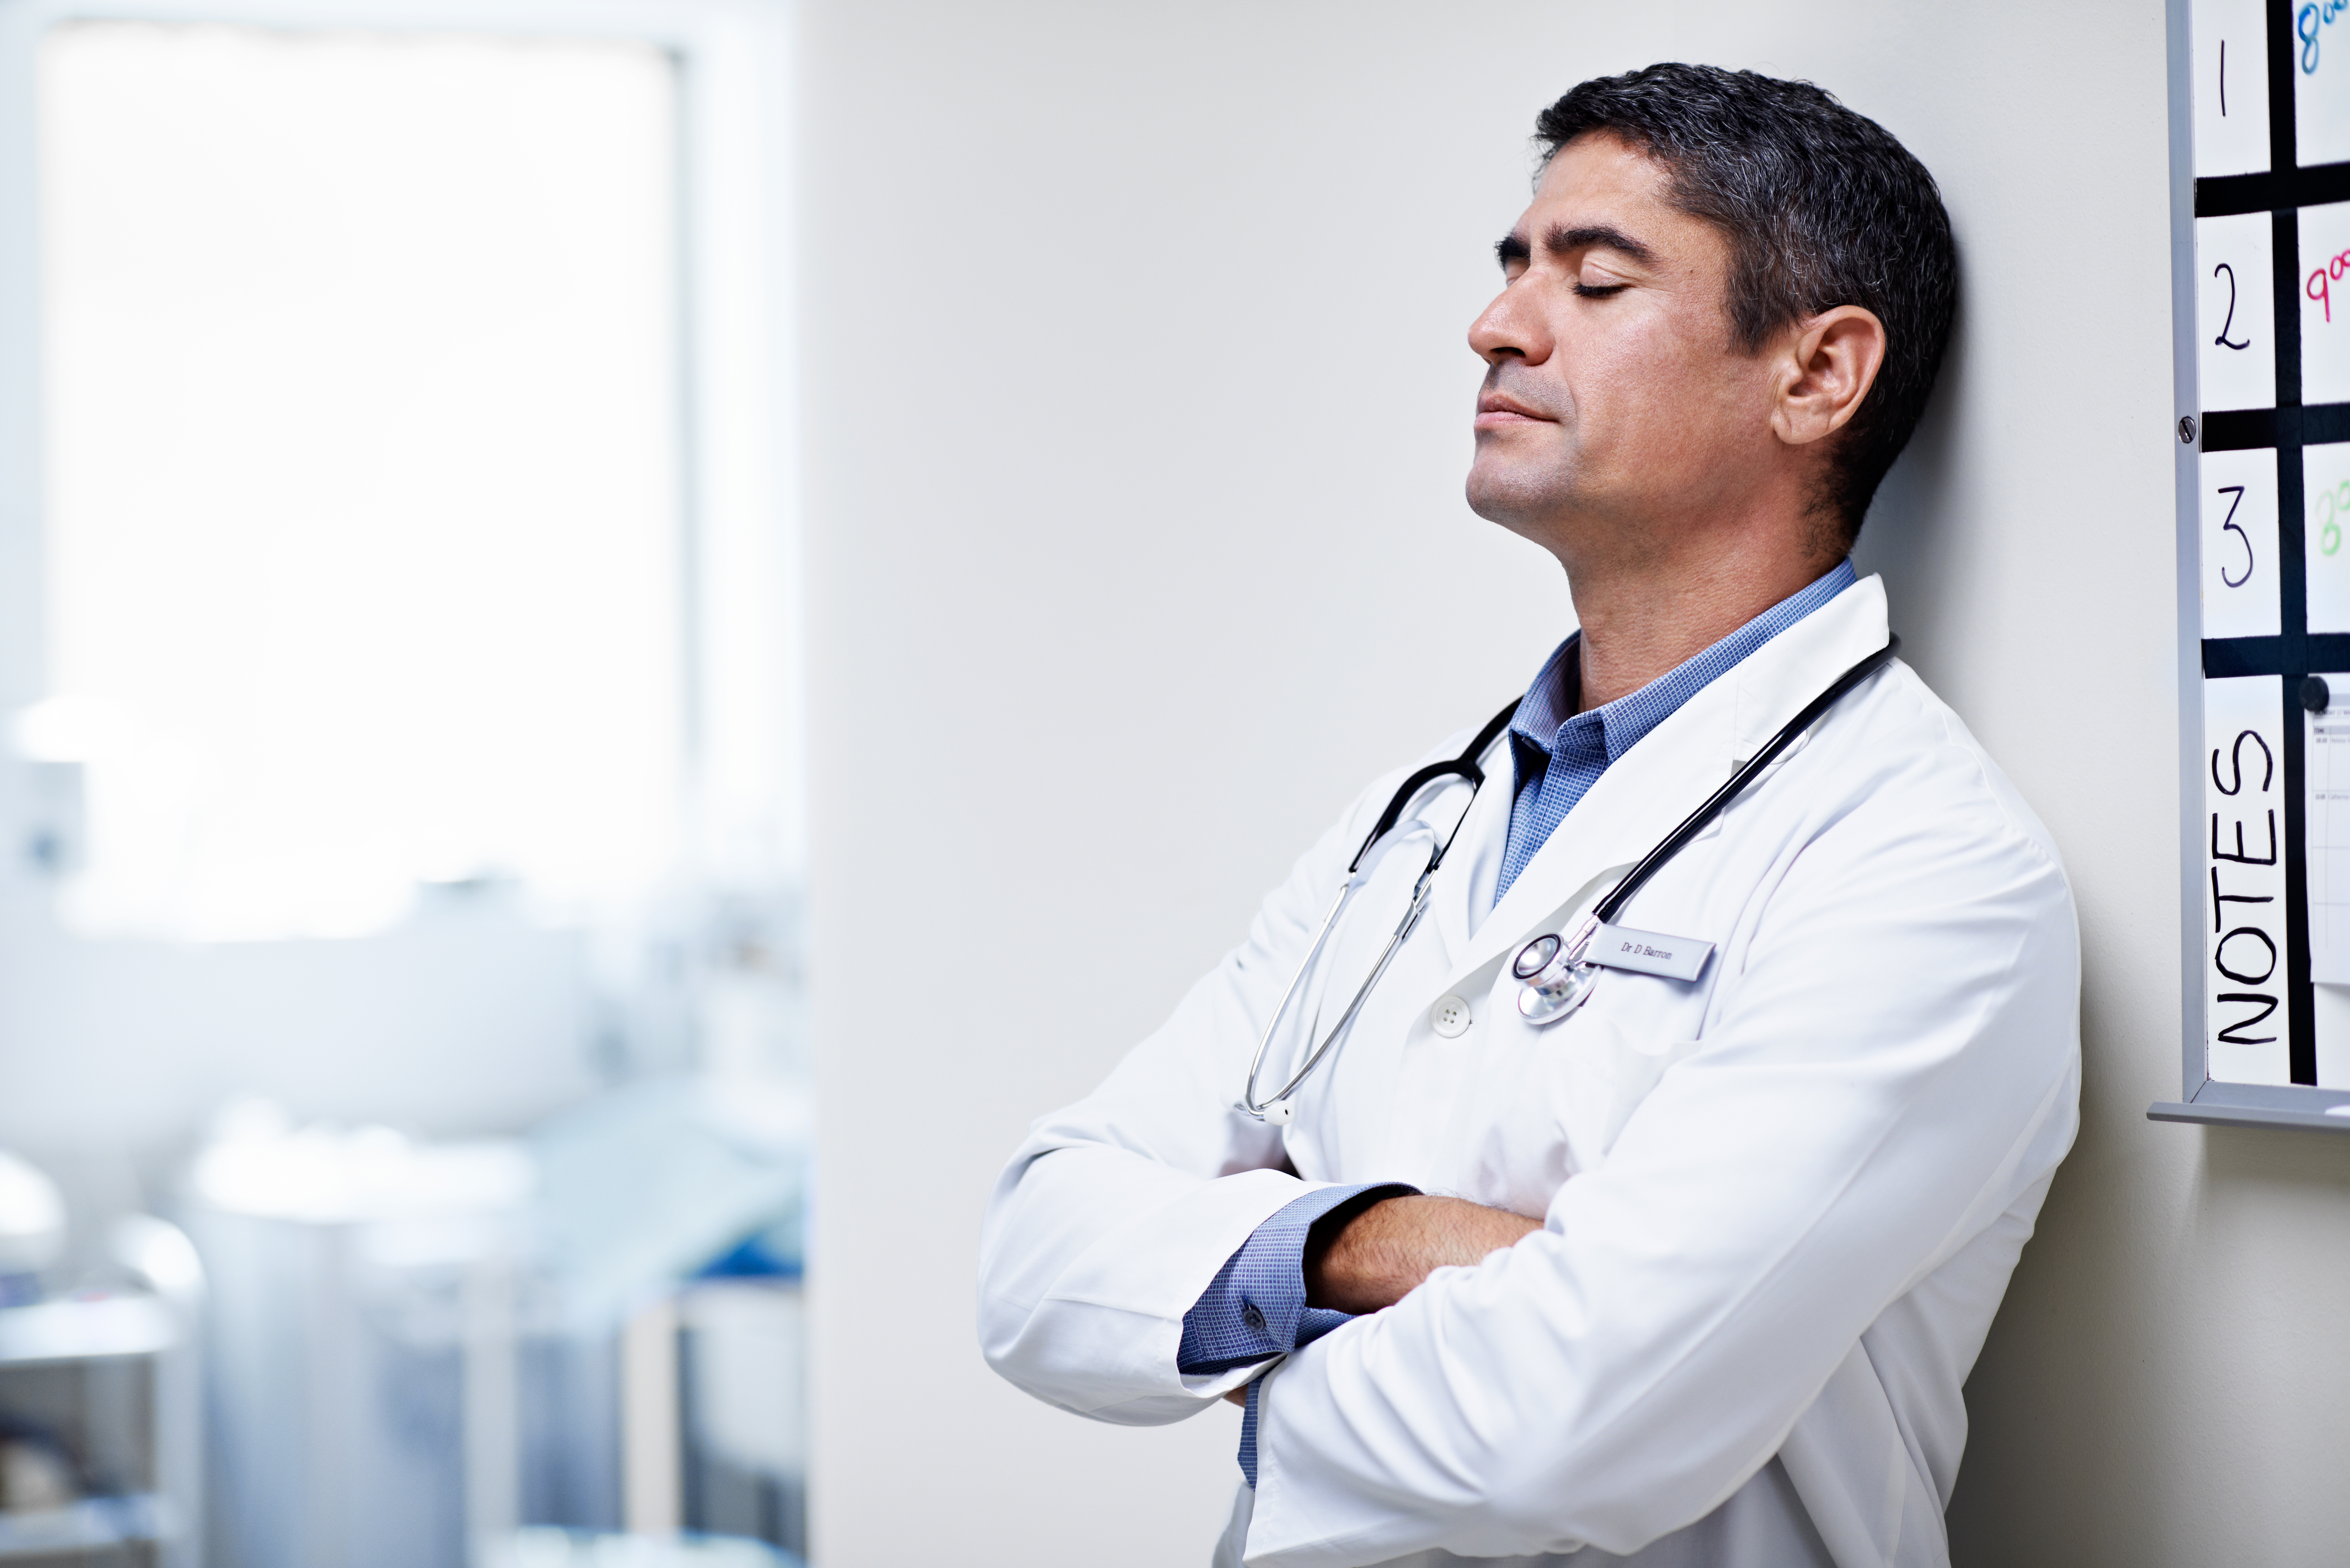 How Can You Be An Assertive Patient Without Antagonizing Your